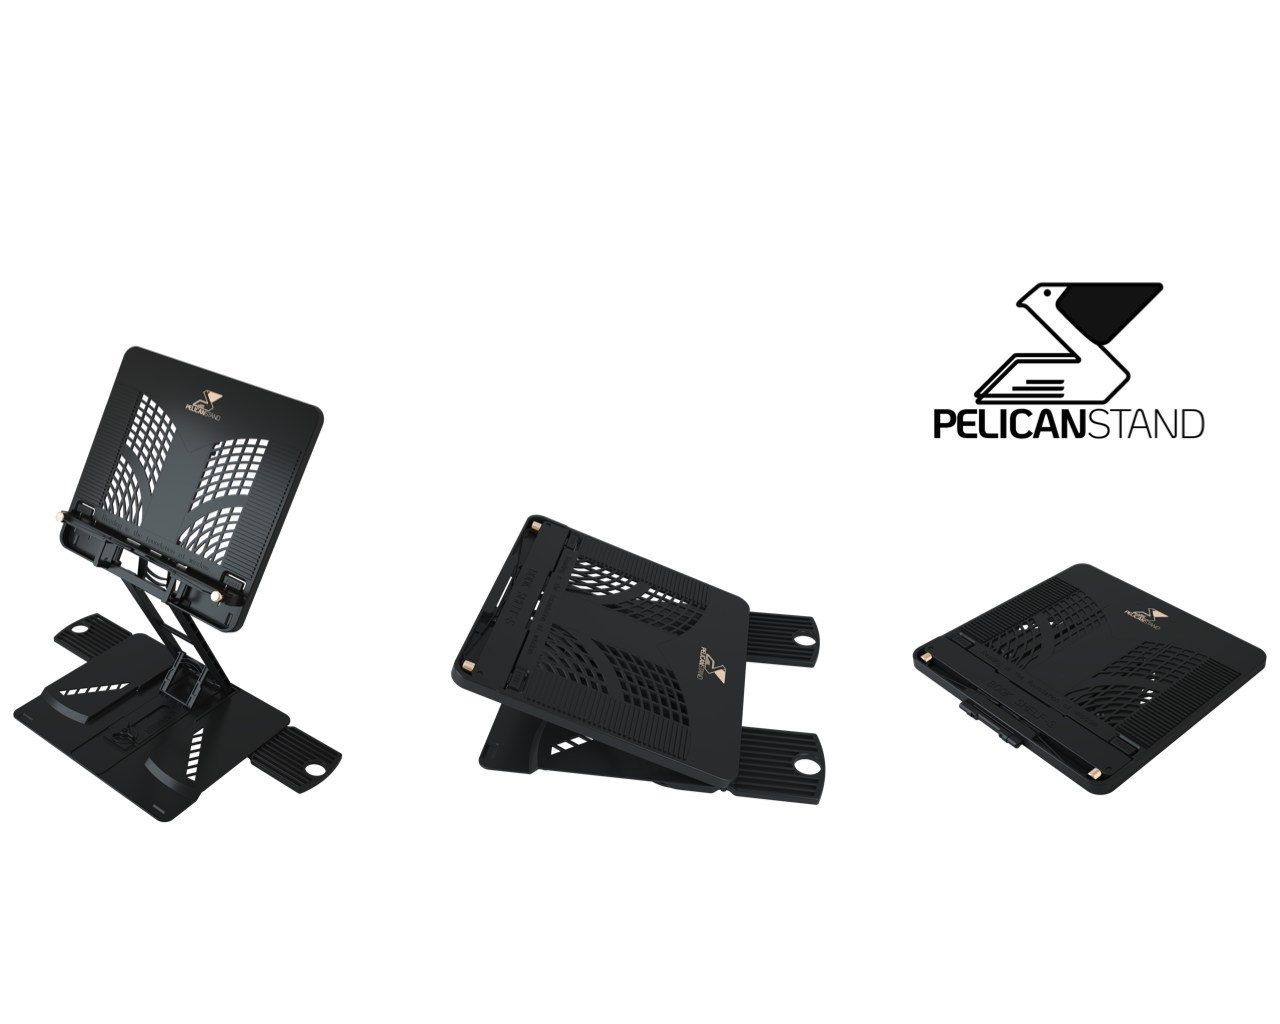 PelicanStand is the Latest Must Have Gadget From the Genius Who Invented the Foldable Mobile Phone